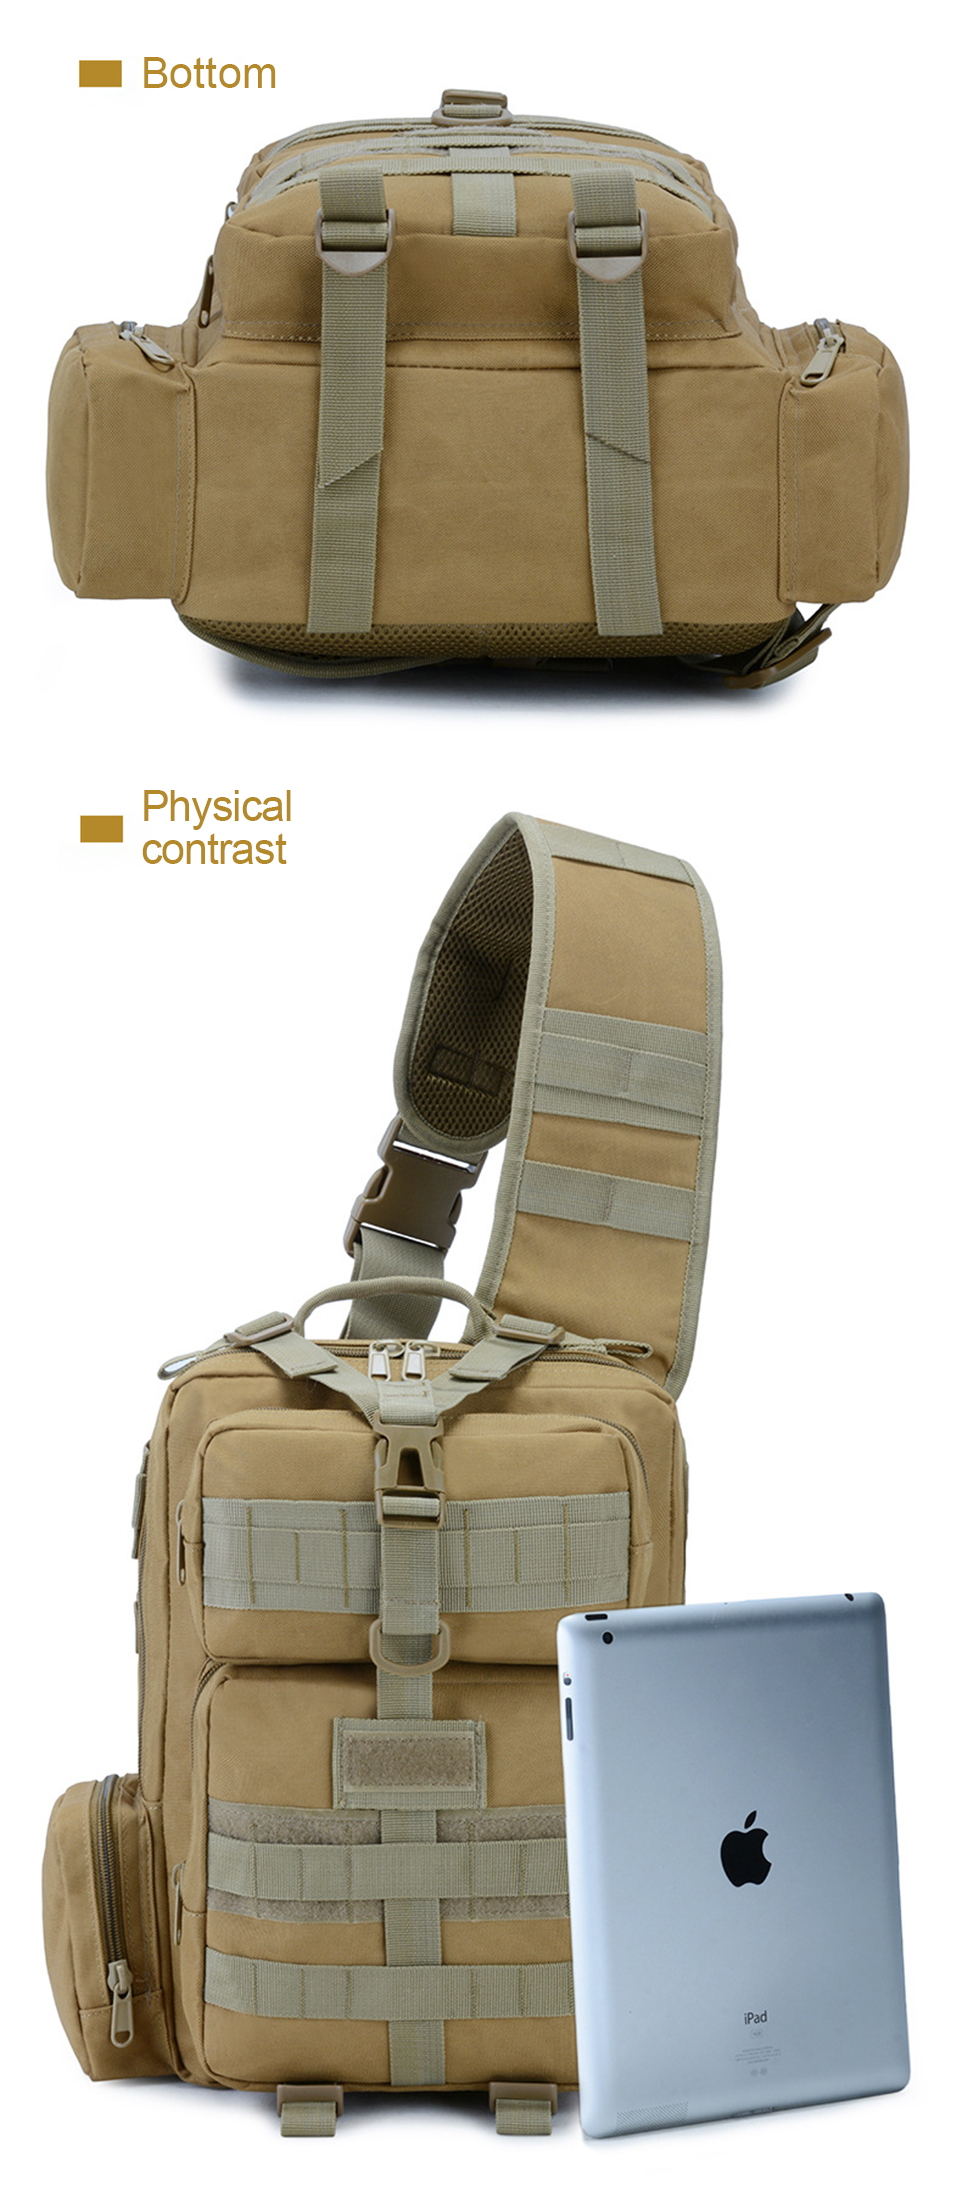 Outdoor-Sports-Military-Bag-Tactical-Bags-Climbing-Shoulder-Bag-Camping-Hiking-Hunting-Chest-Daypack-Molle-Camouflage-Backpack_10